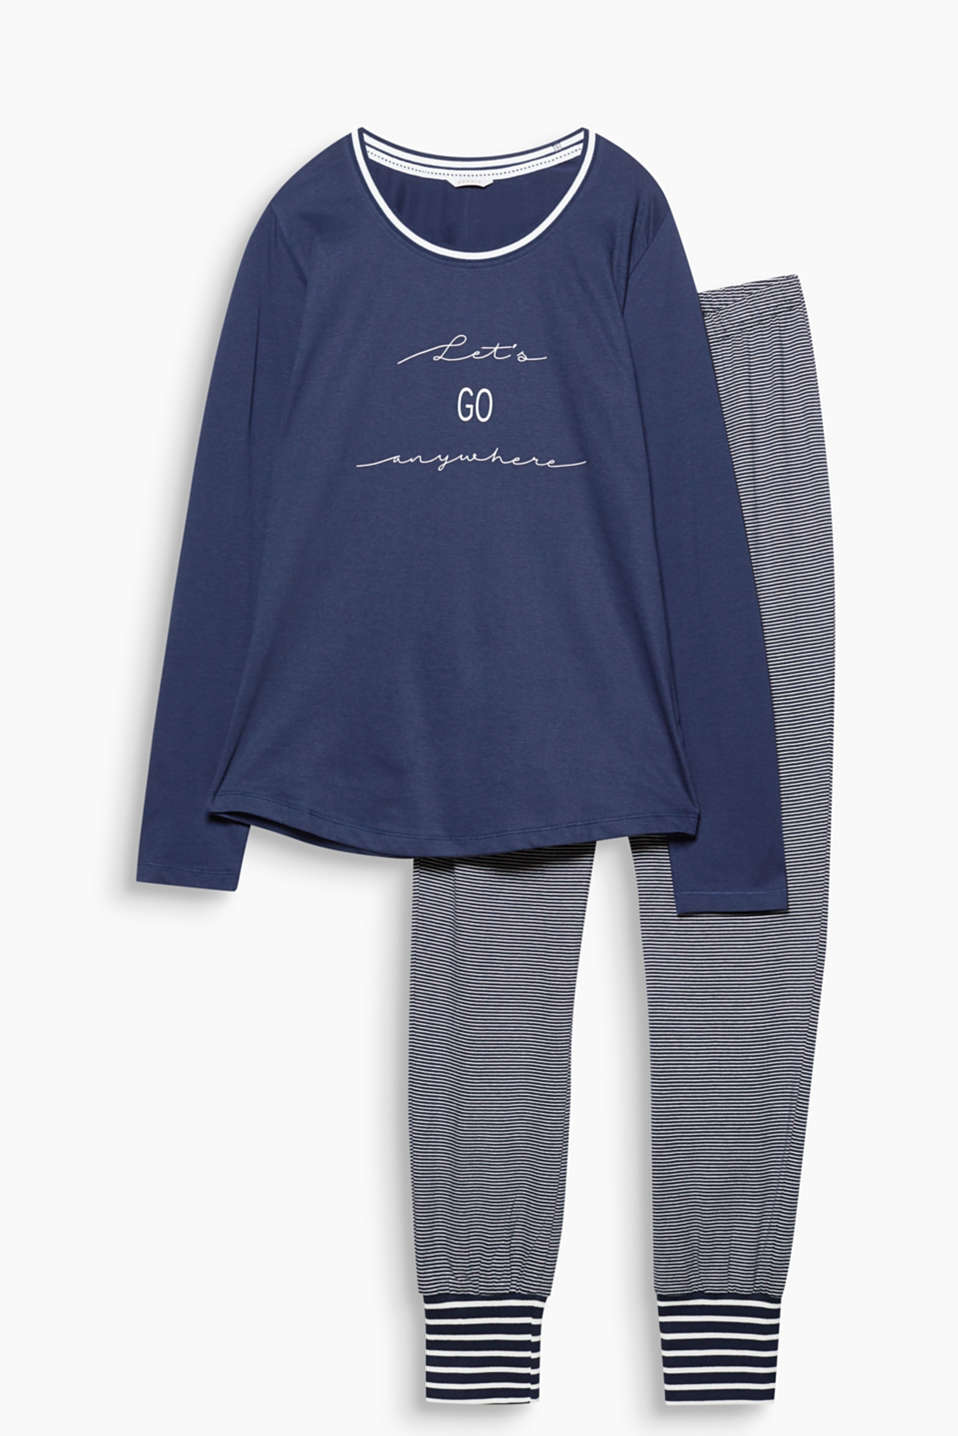 Sail through the night in nautical style: jersey pyjamas consisting of a printed long sleeve top and striped bottoms